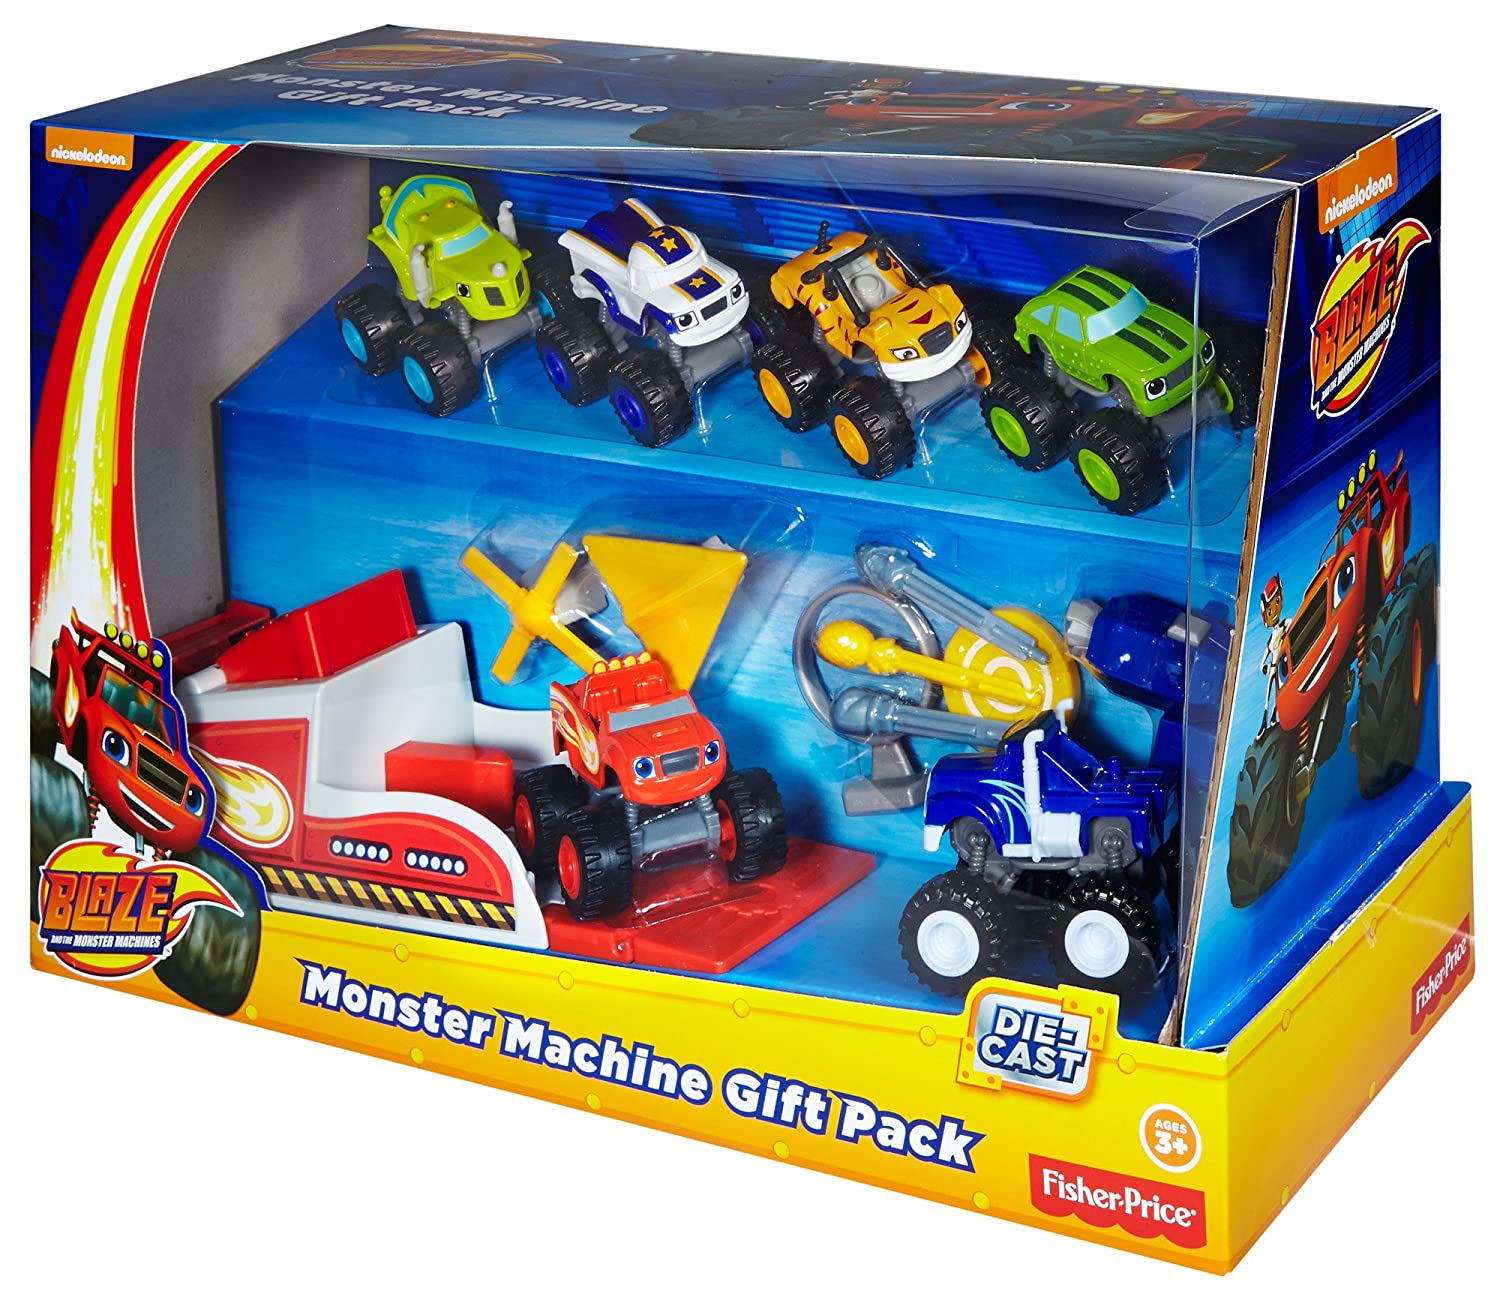 monster trucks die cast vehicle blaze fisher price new gift pack 6 cars launcher ebay. Black Bedroom Furniture Sets. Home Design Ideas